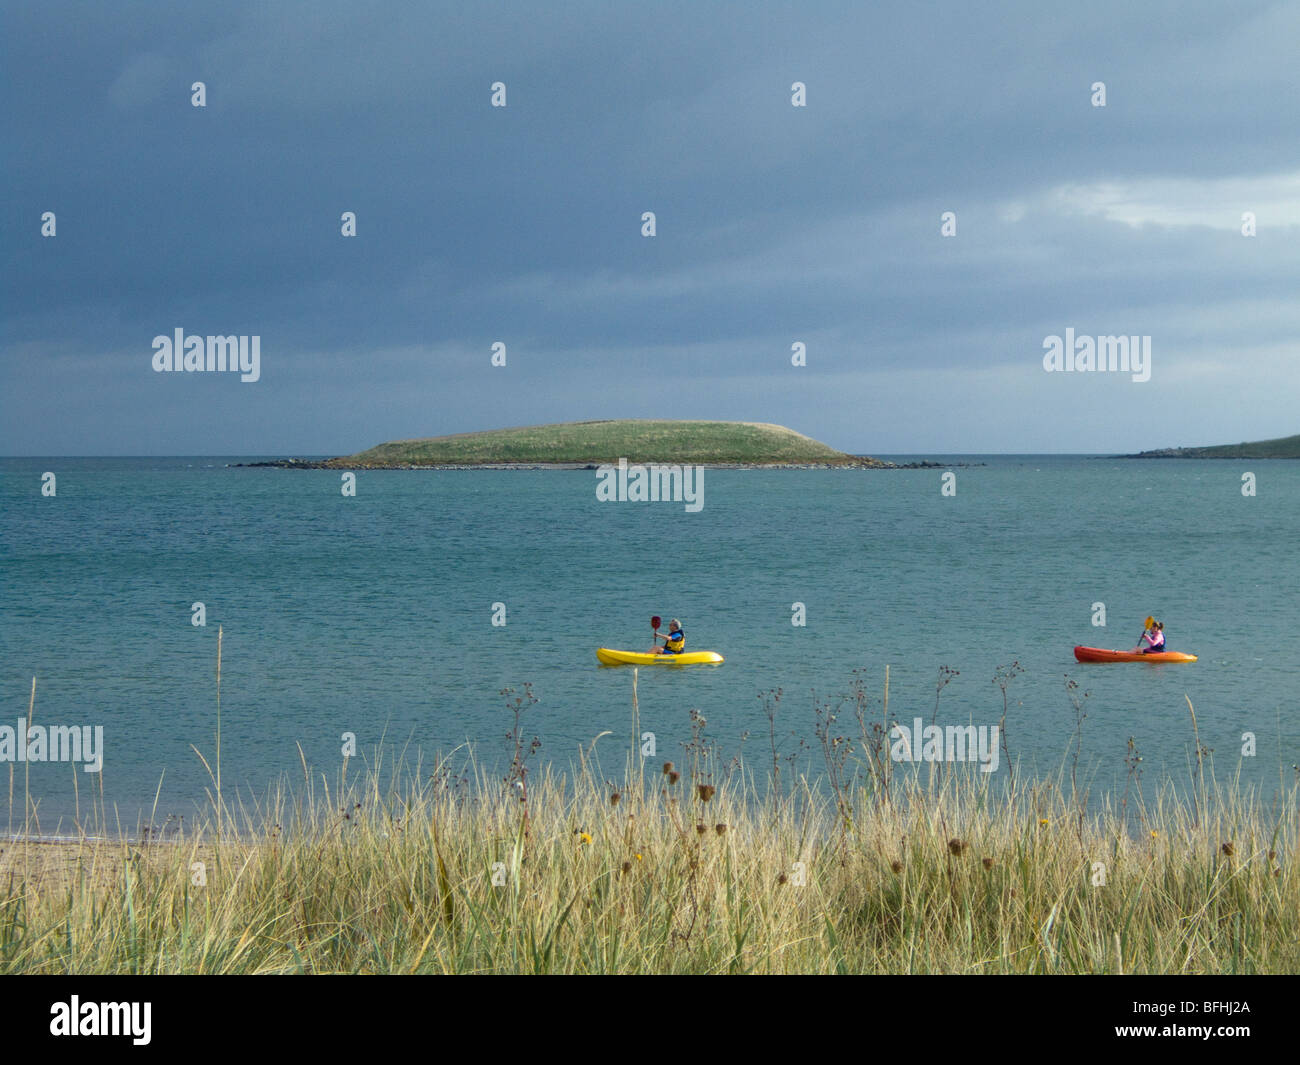 A pair of canoeists enjoying a still day in the waters of Skerries beach, north county Dublin, Ireland - Stock Image